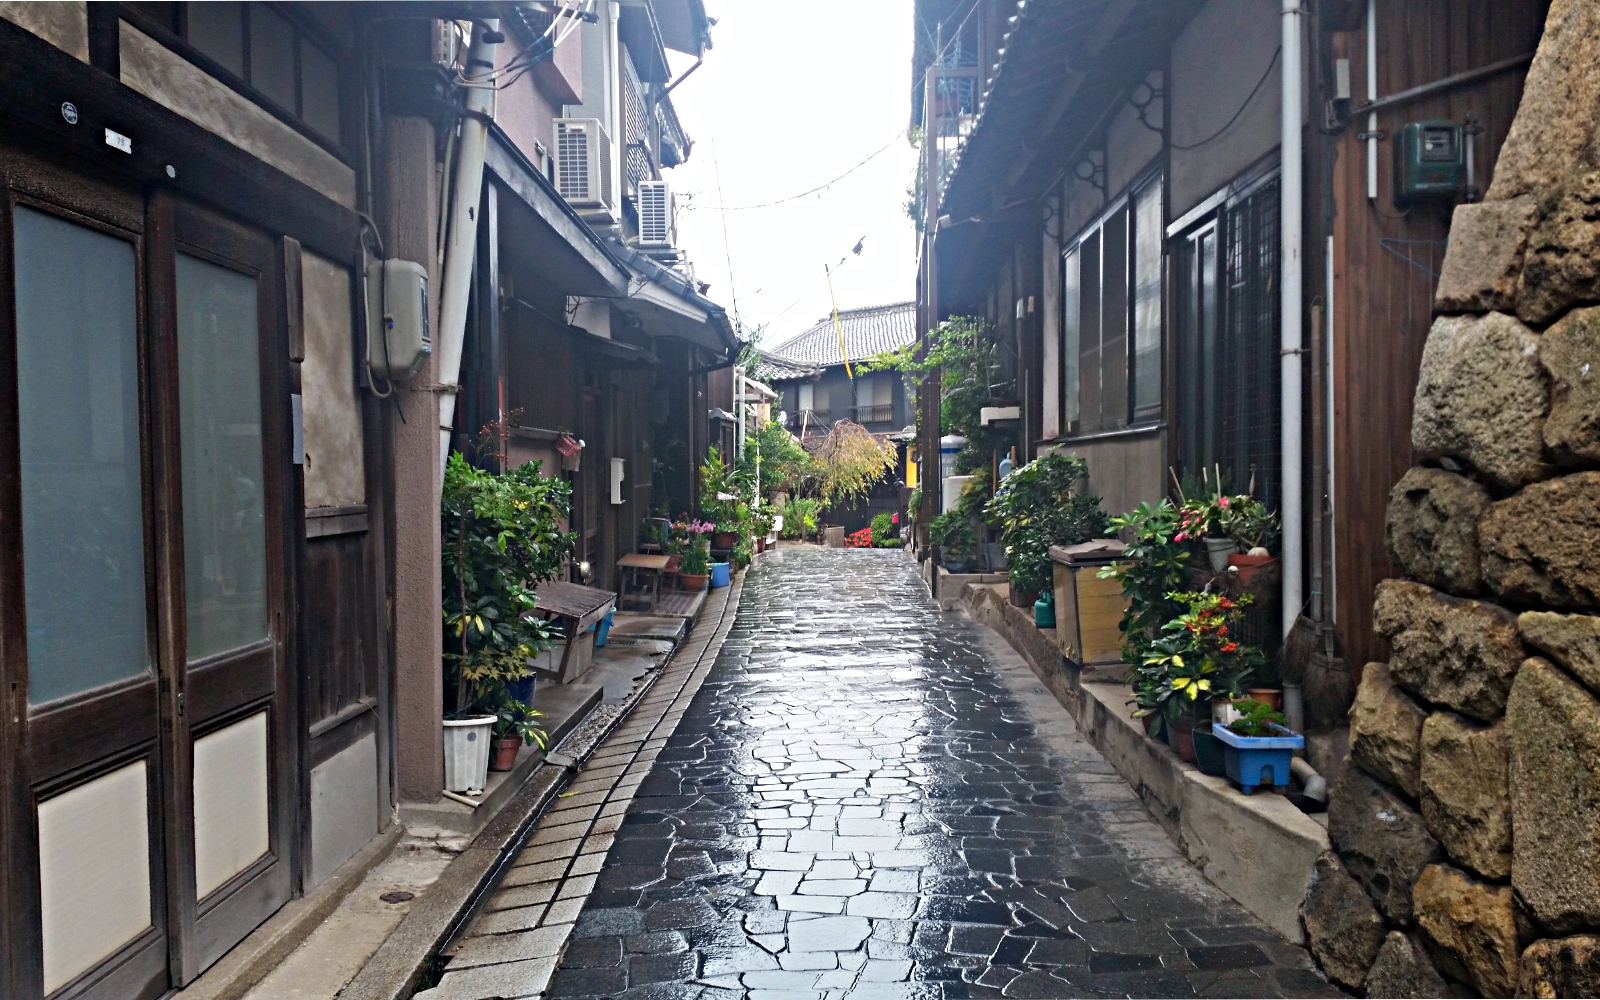 A typical residential lane in Tomonoura.